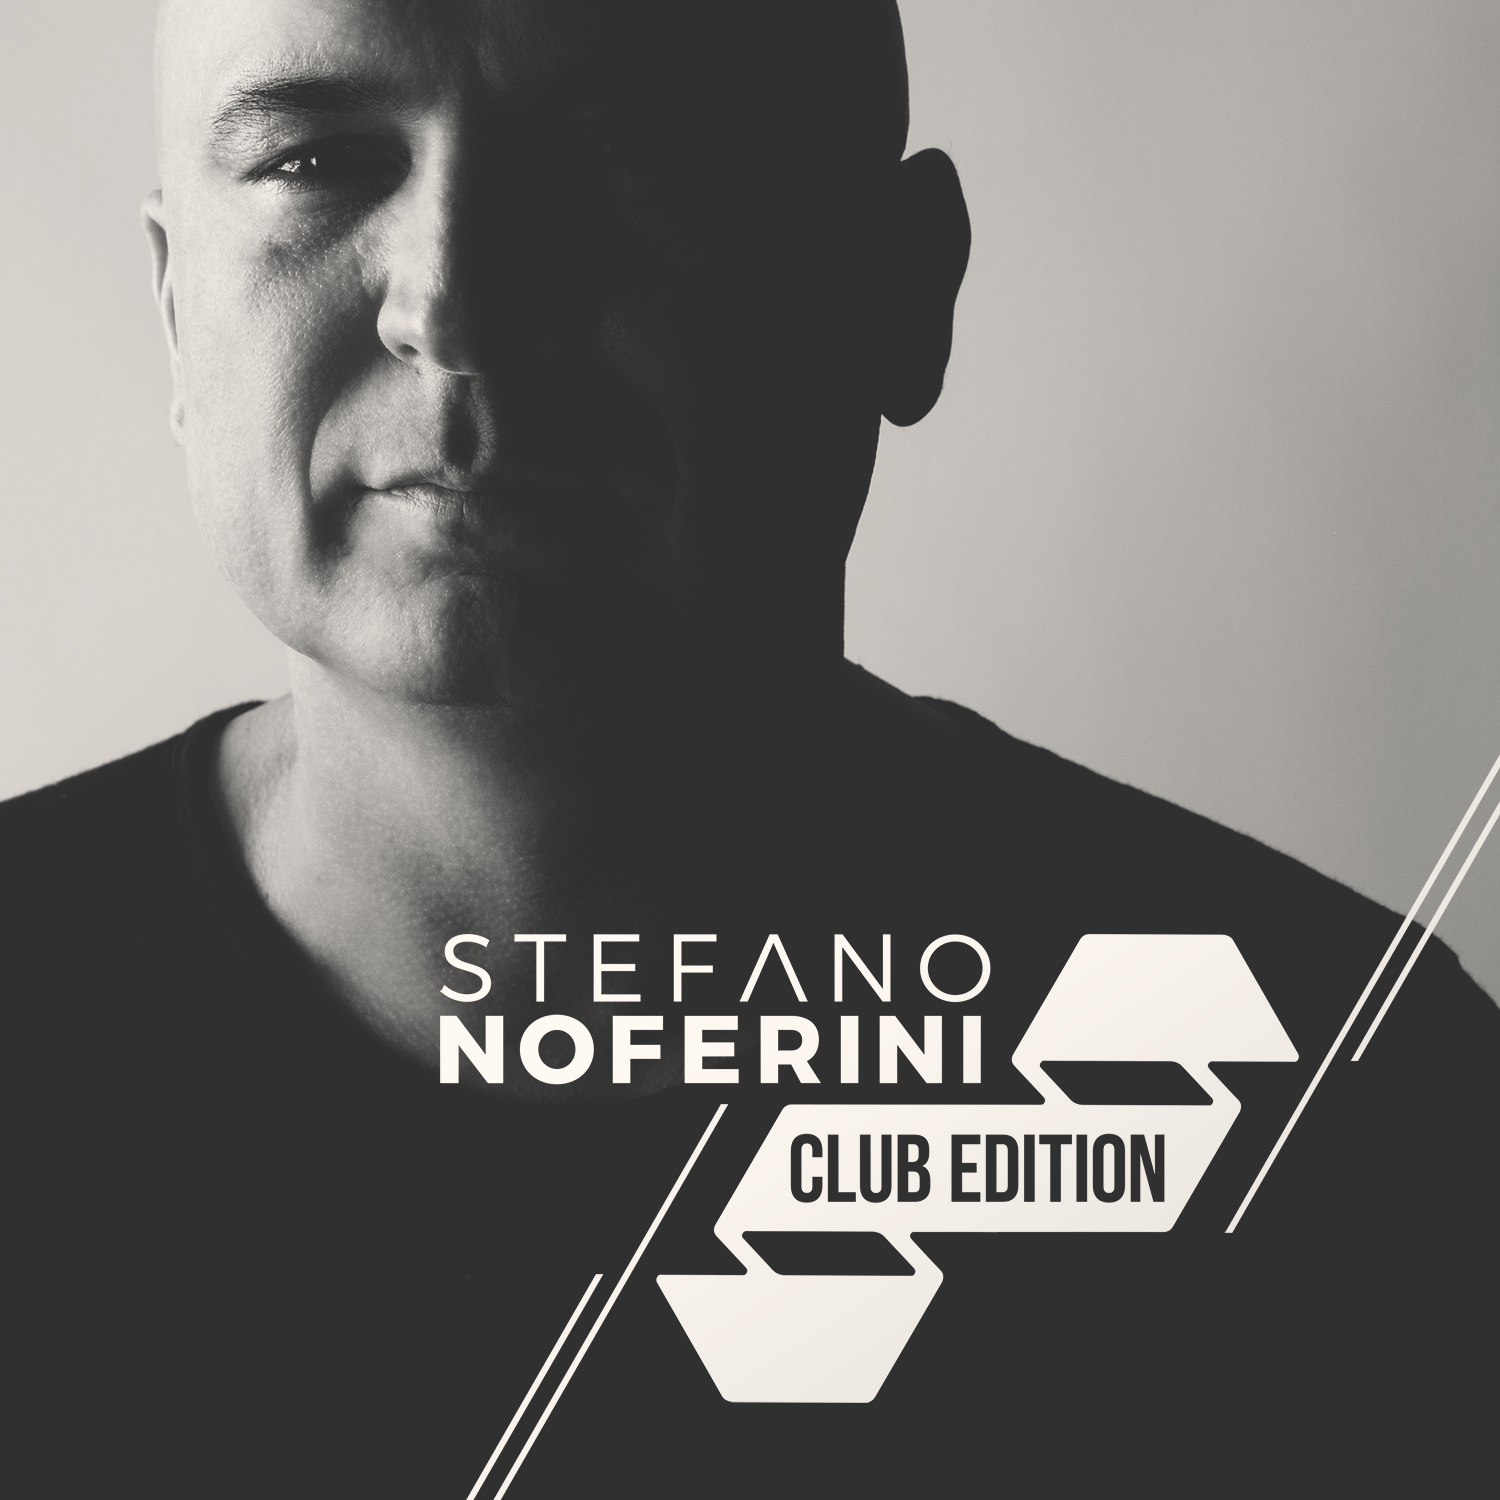 Delta Podcasts - Club Edition by Stefano Noferini (30.11.2017)